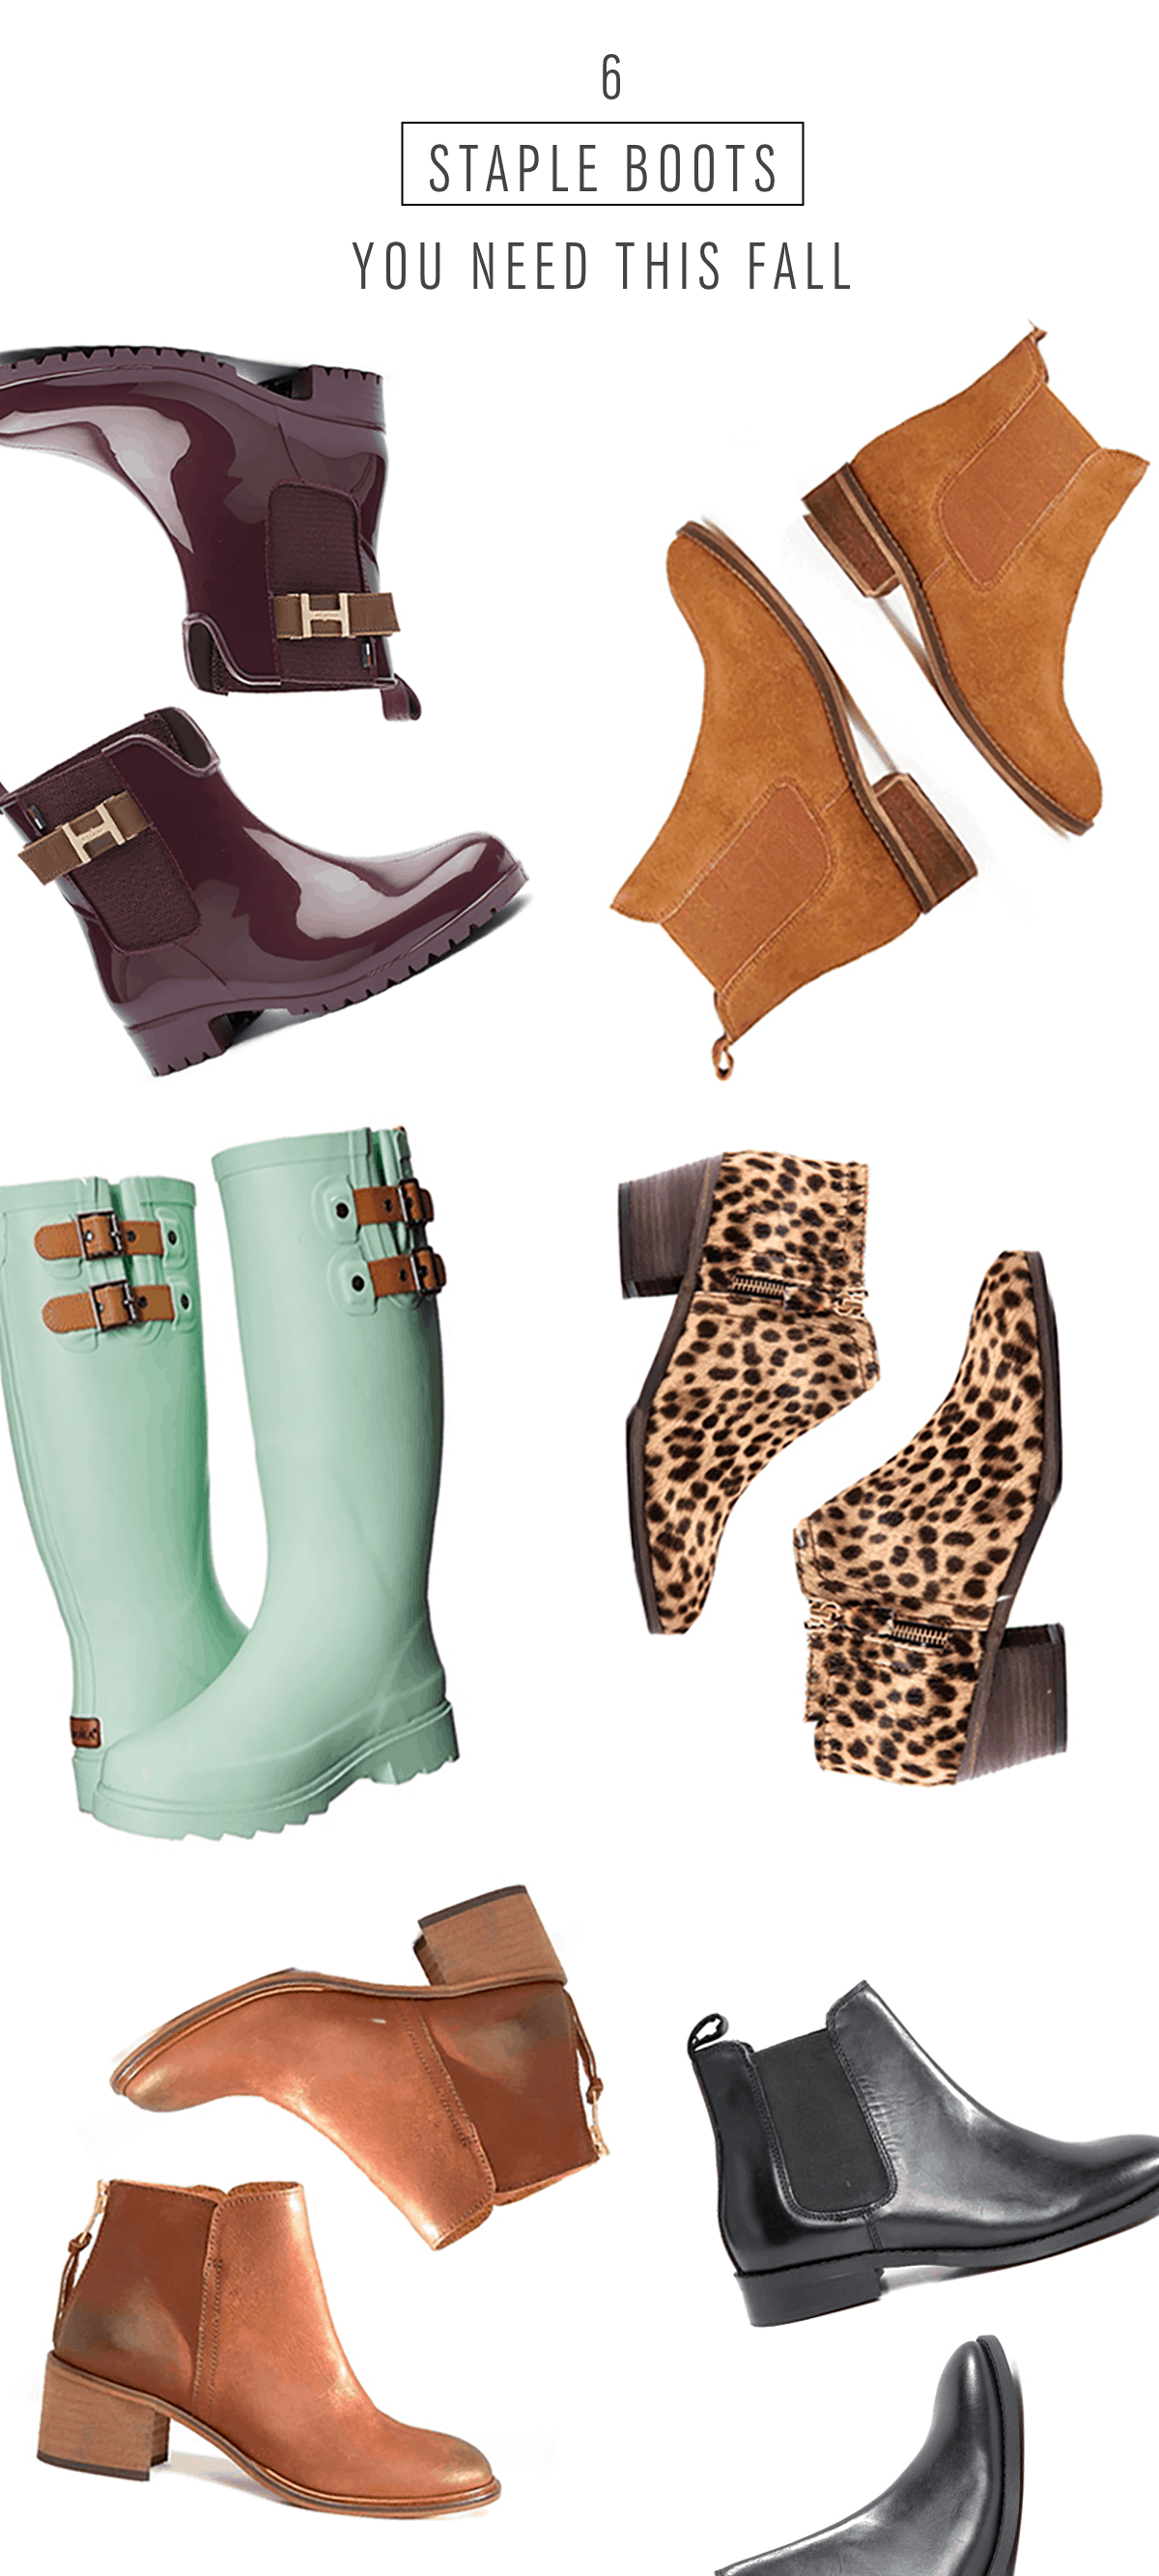 6 Staple Boots you Need this fall - Sugar & Cloth - Houston Blogger - Style - Fall - Shop